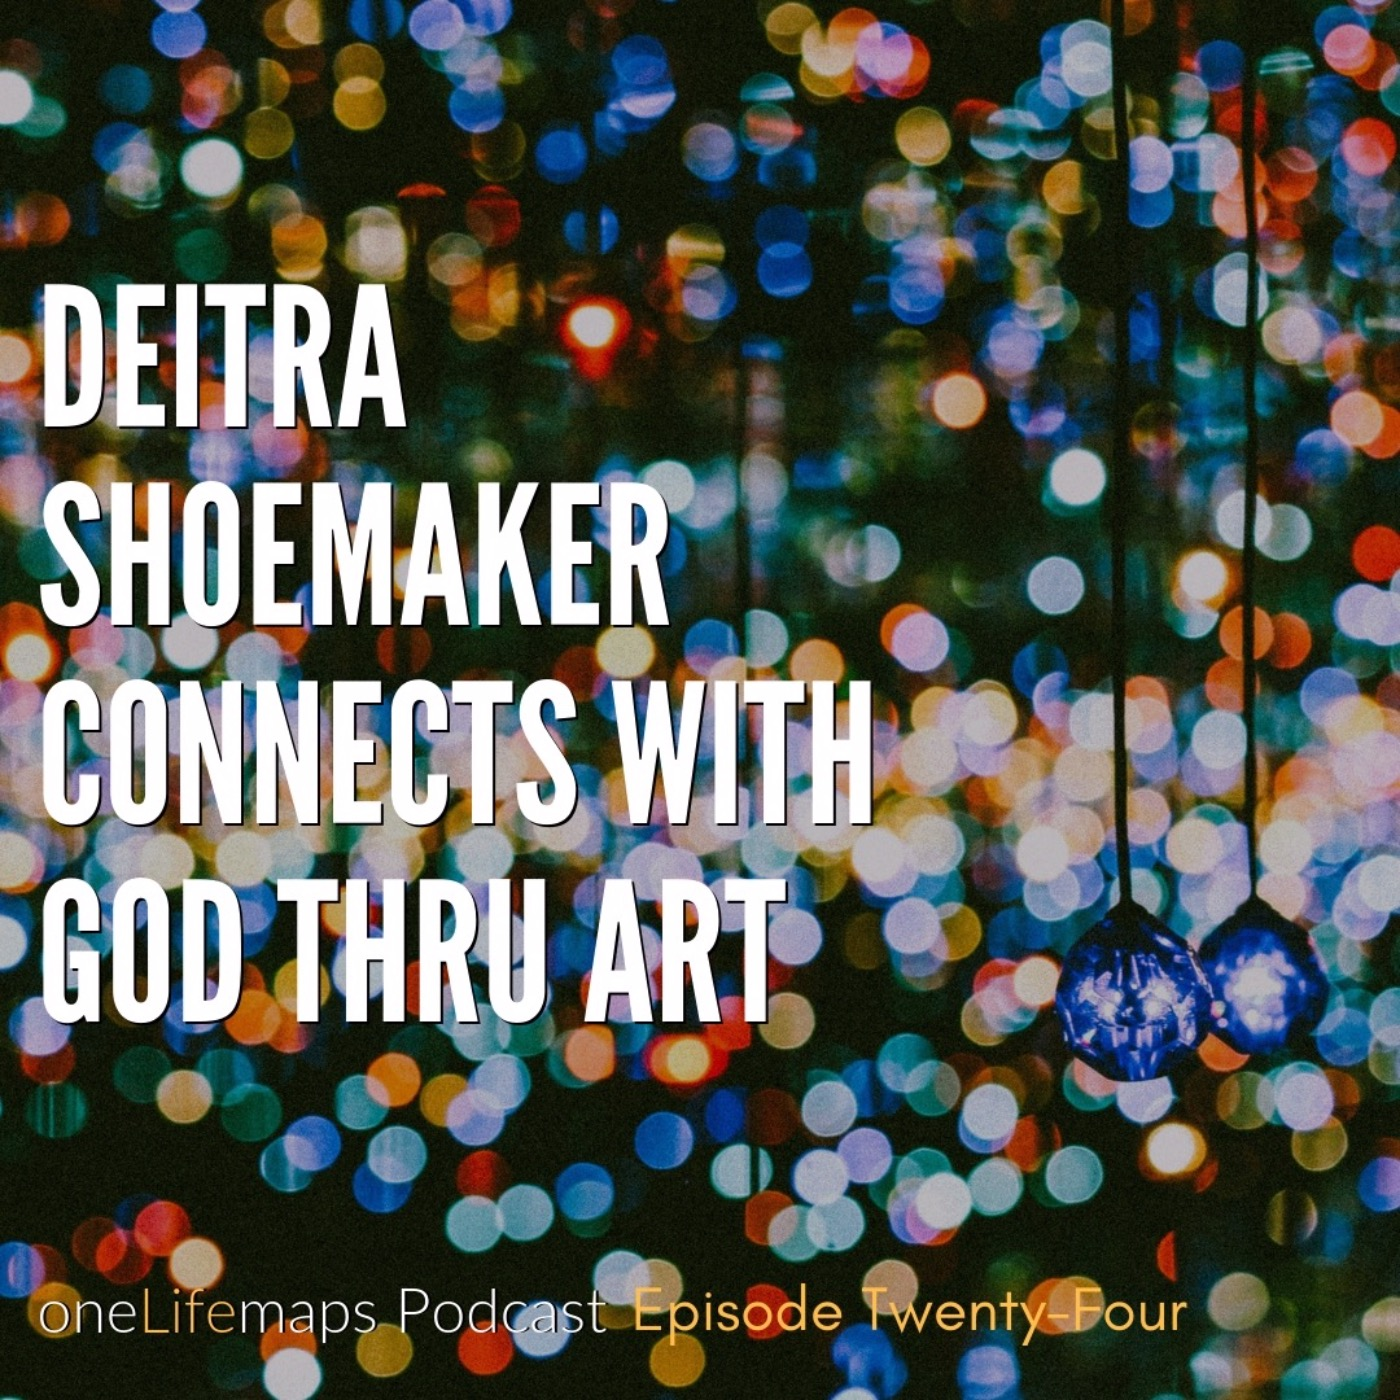 Deitra Shoemaker Connects with God Thru Art